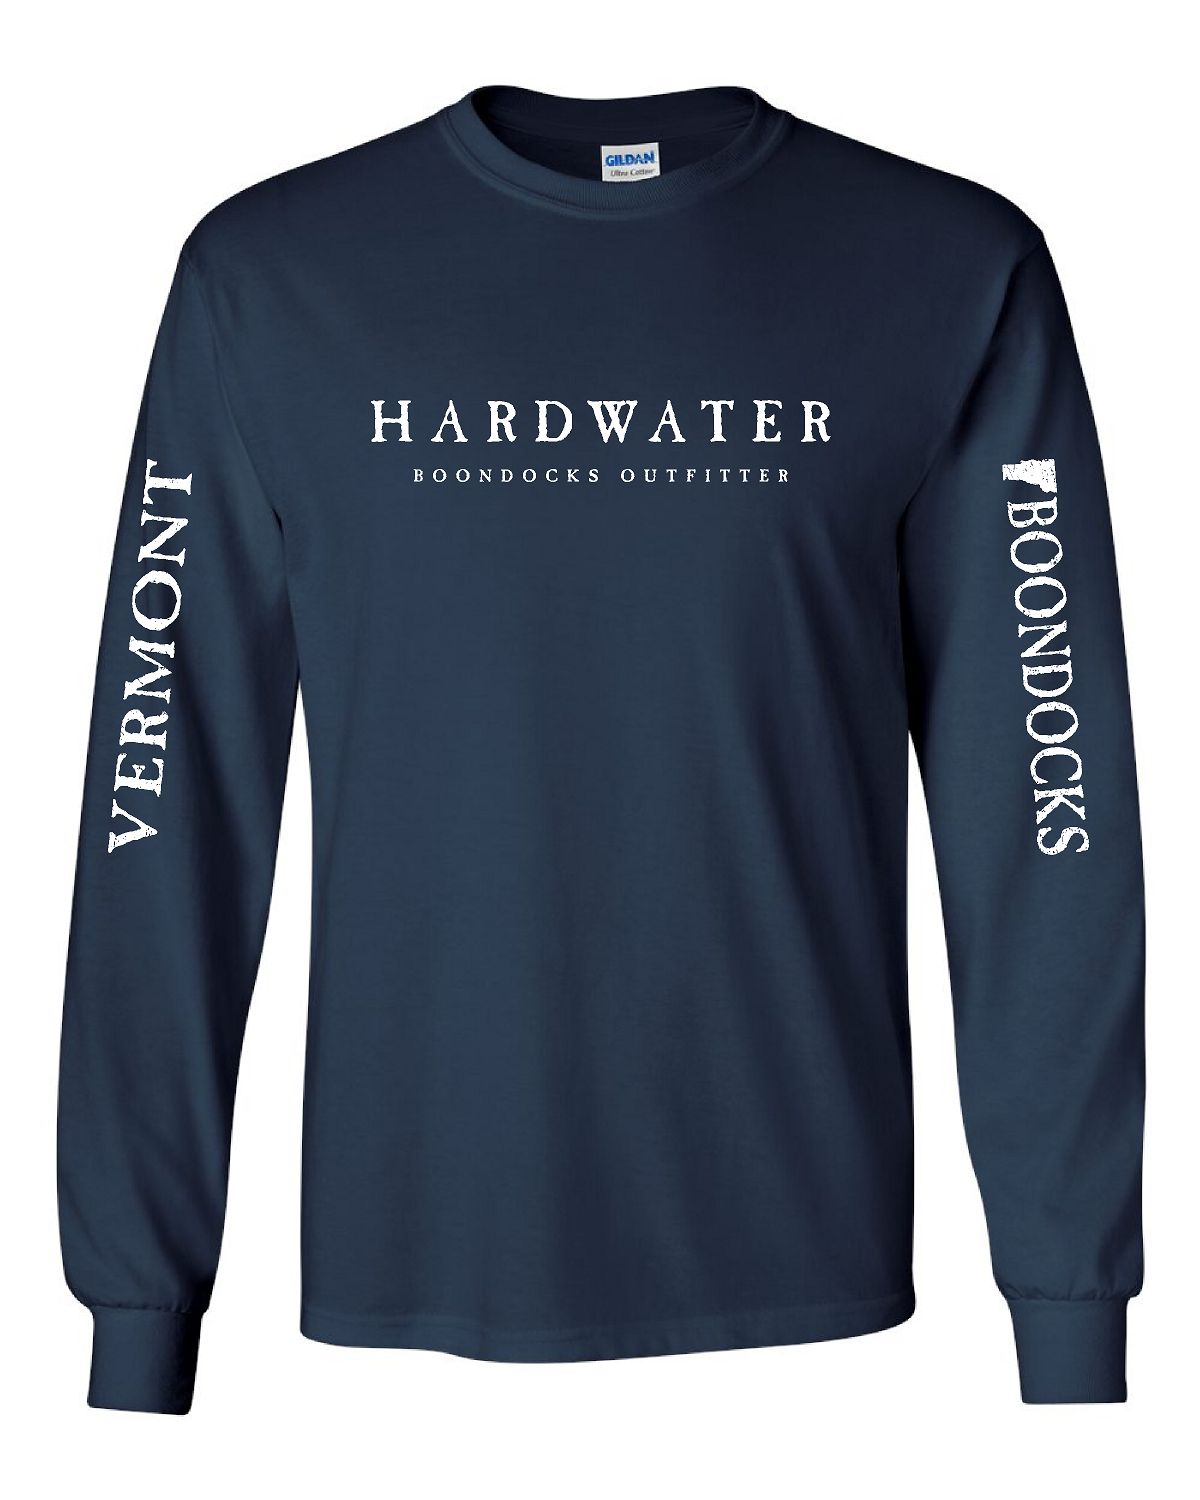 HARDWATER Navy Blue Long Sleeve Tee